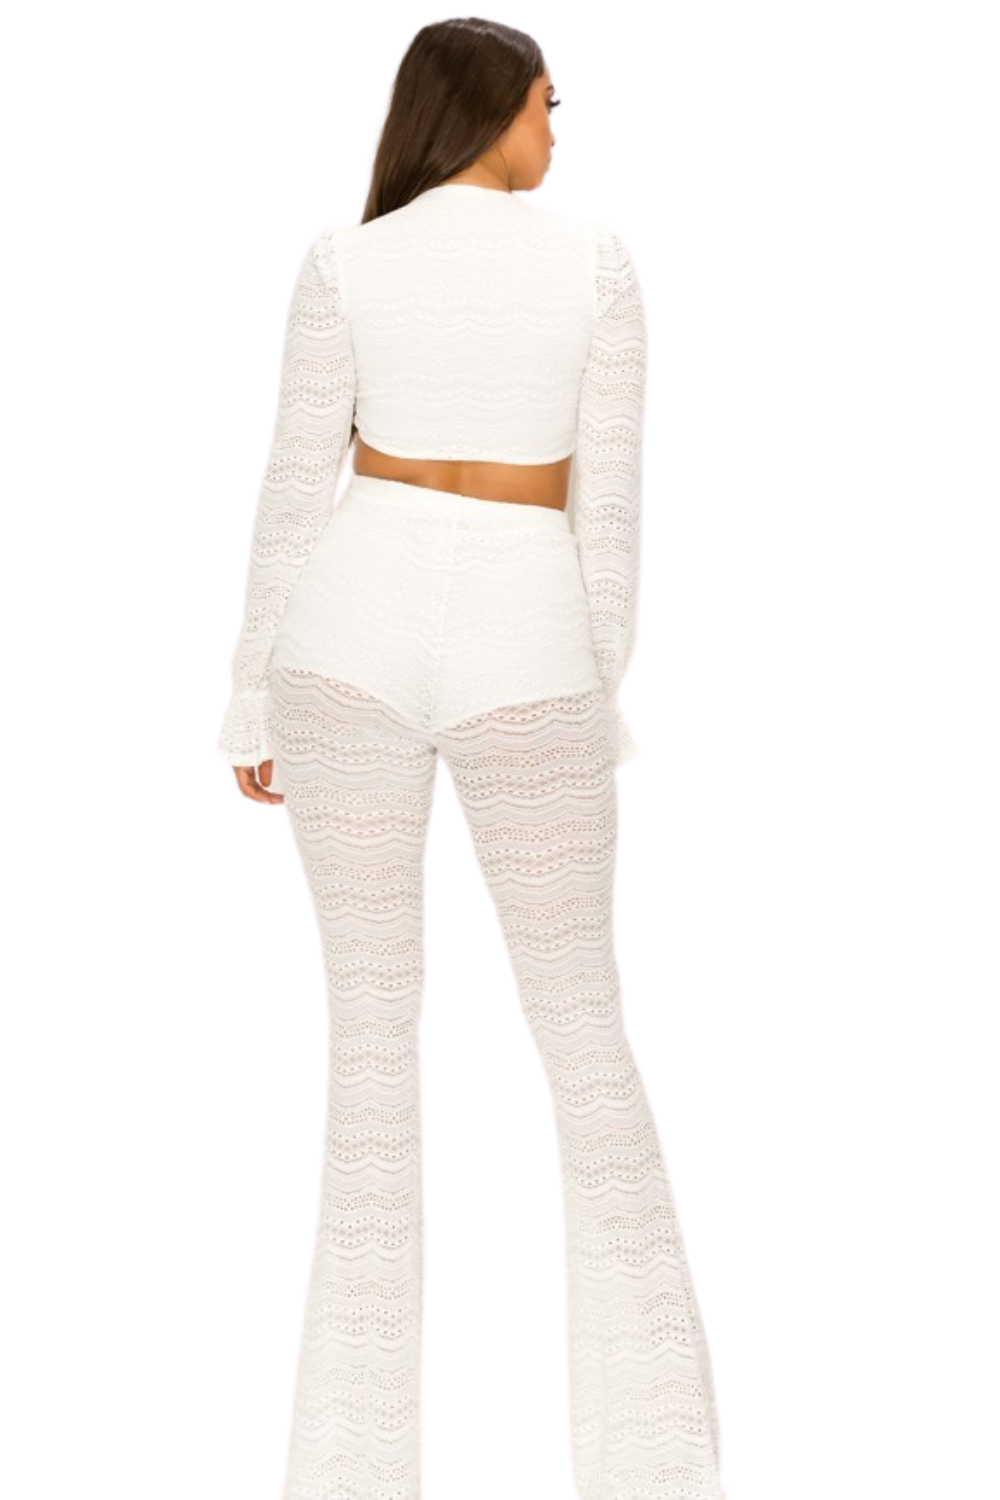 BaeCation Two Piece Knit Set